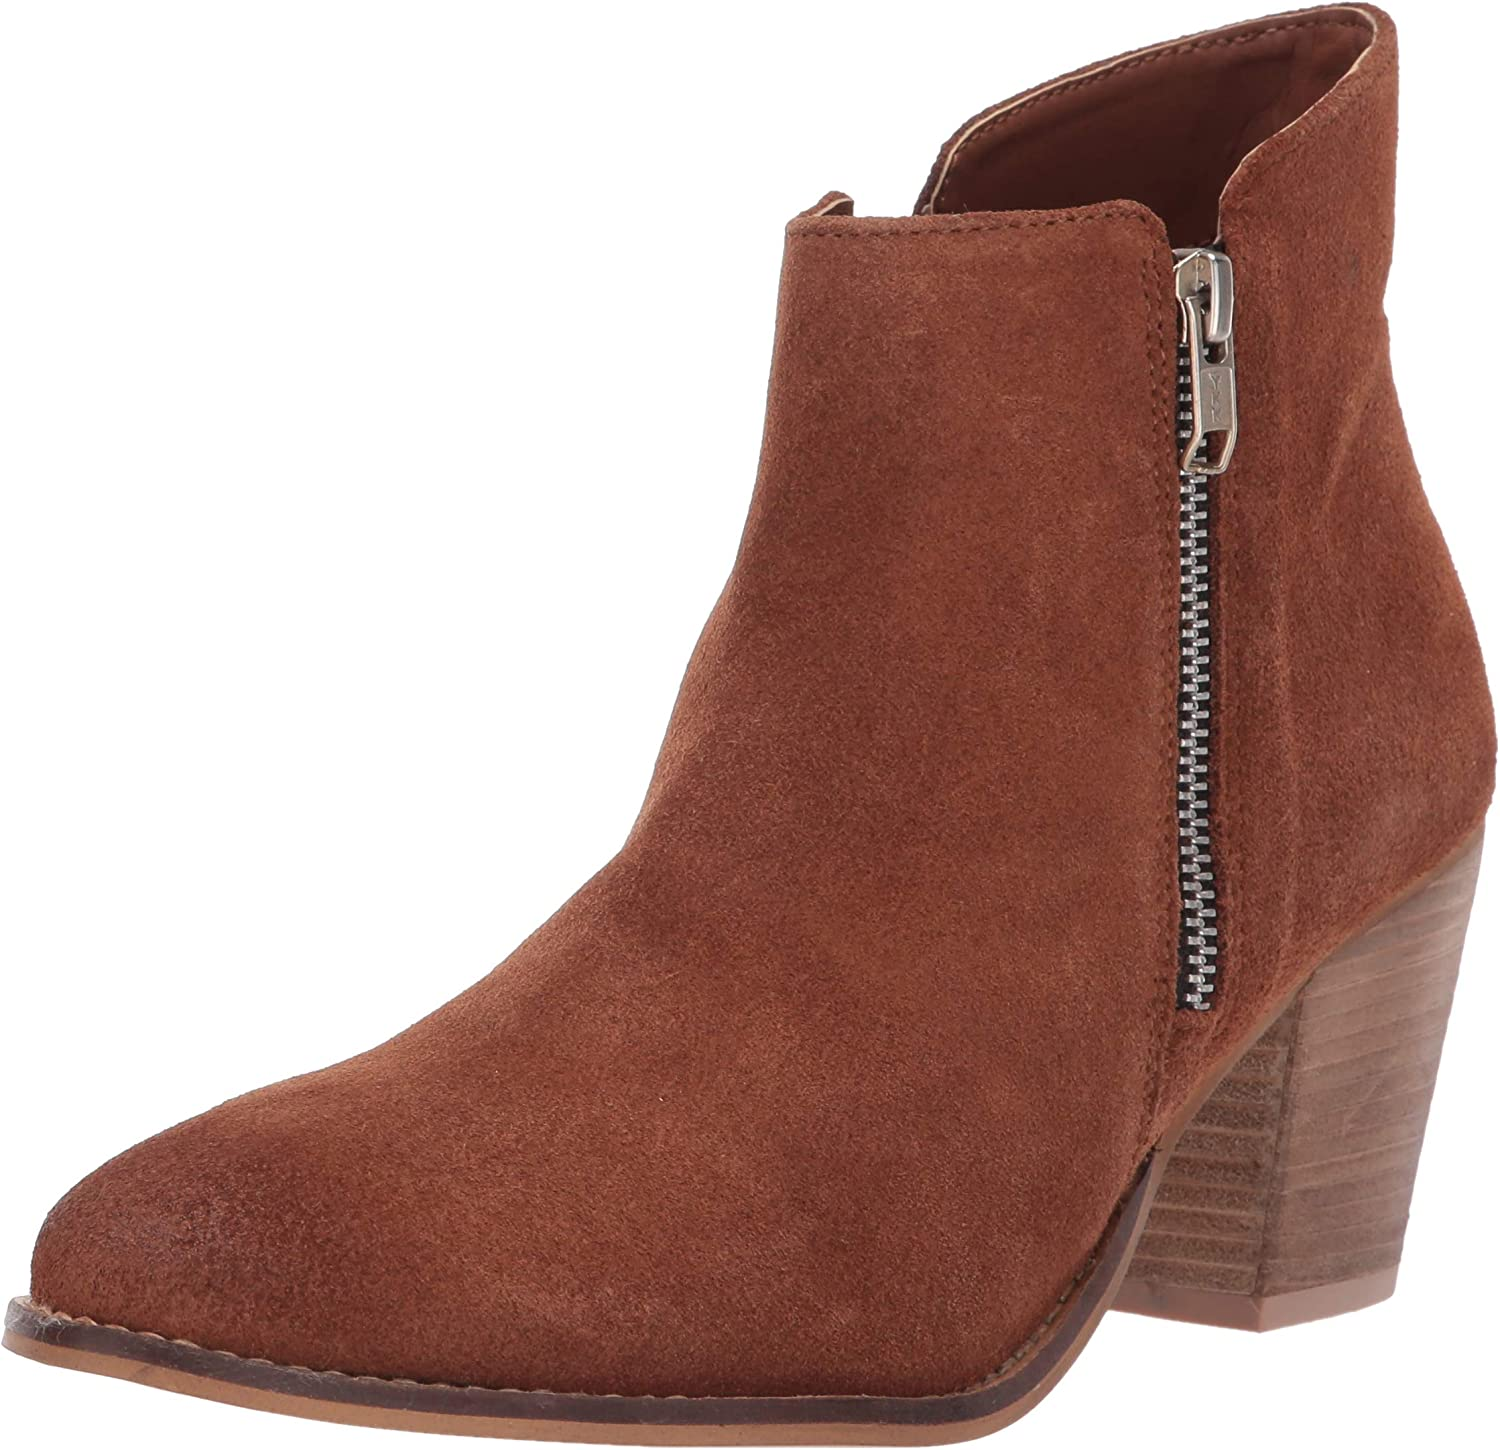 BCBGeneration Womens Laura Bootie Ankle Boot